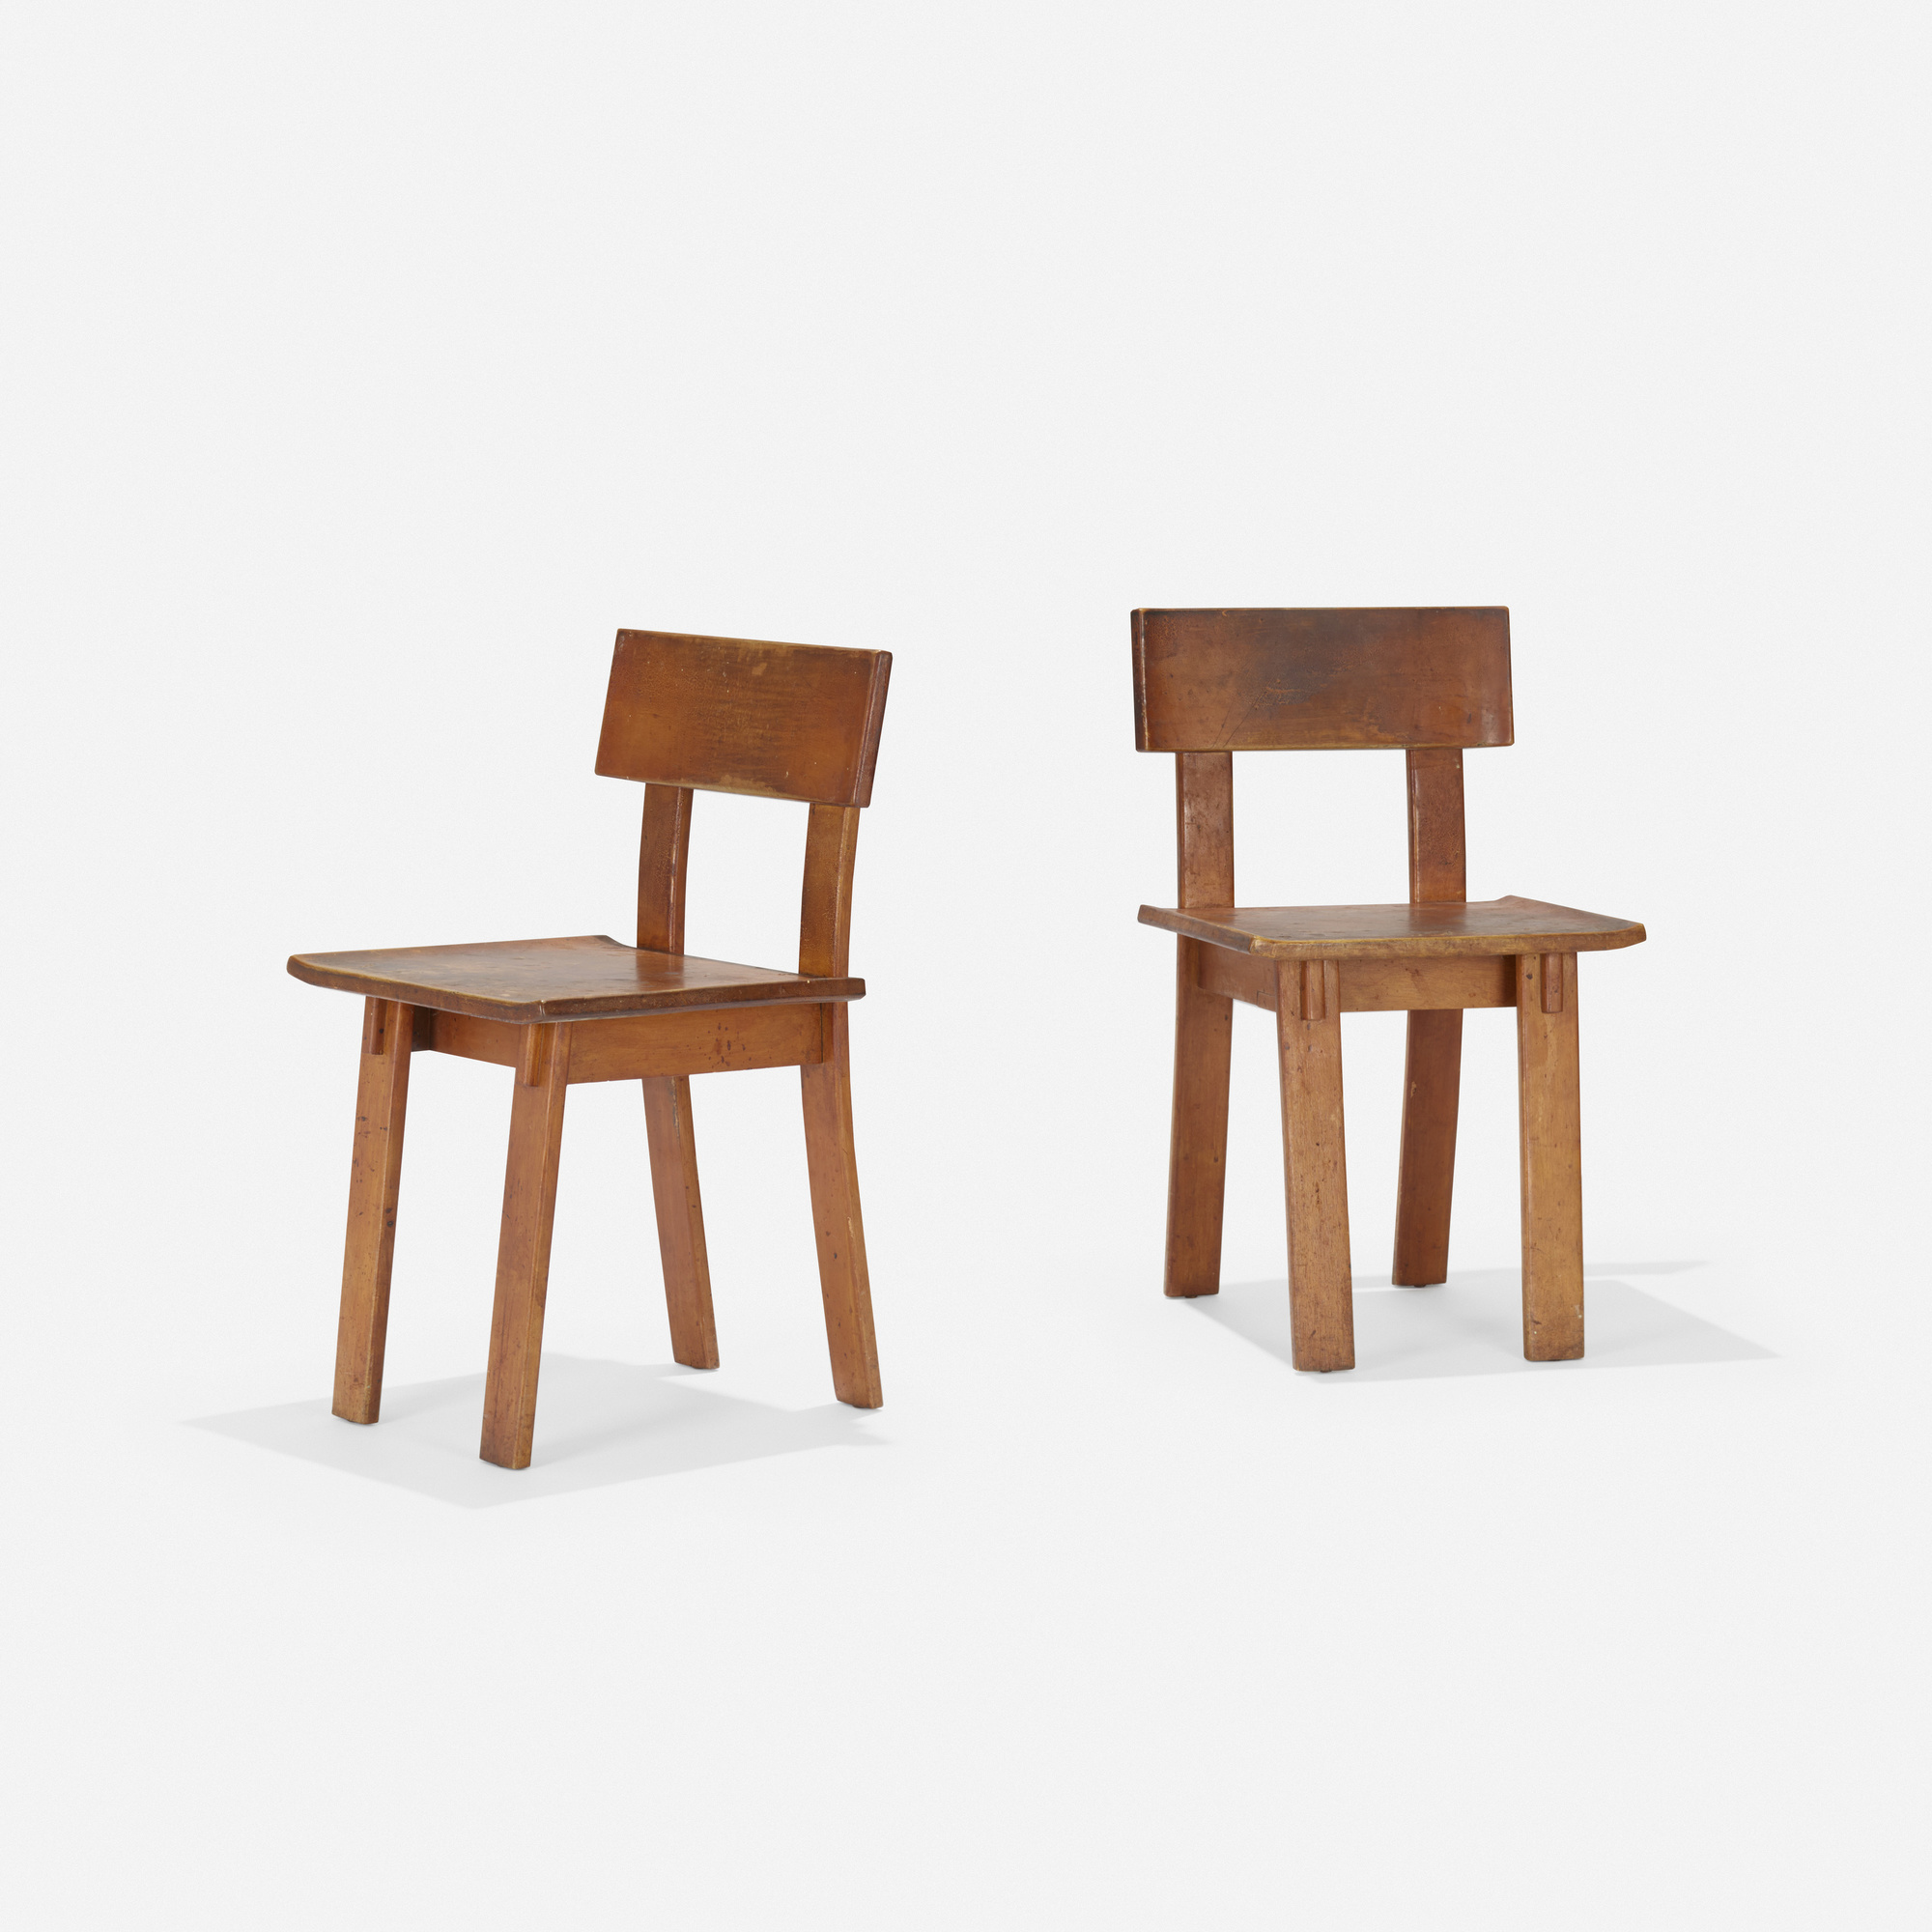 184: Russel Wright / Chairs, Pair (1 Of 4)